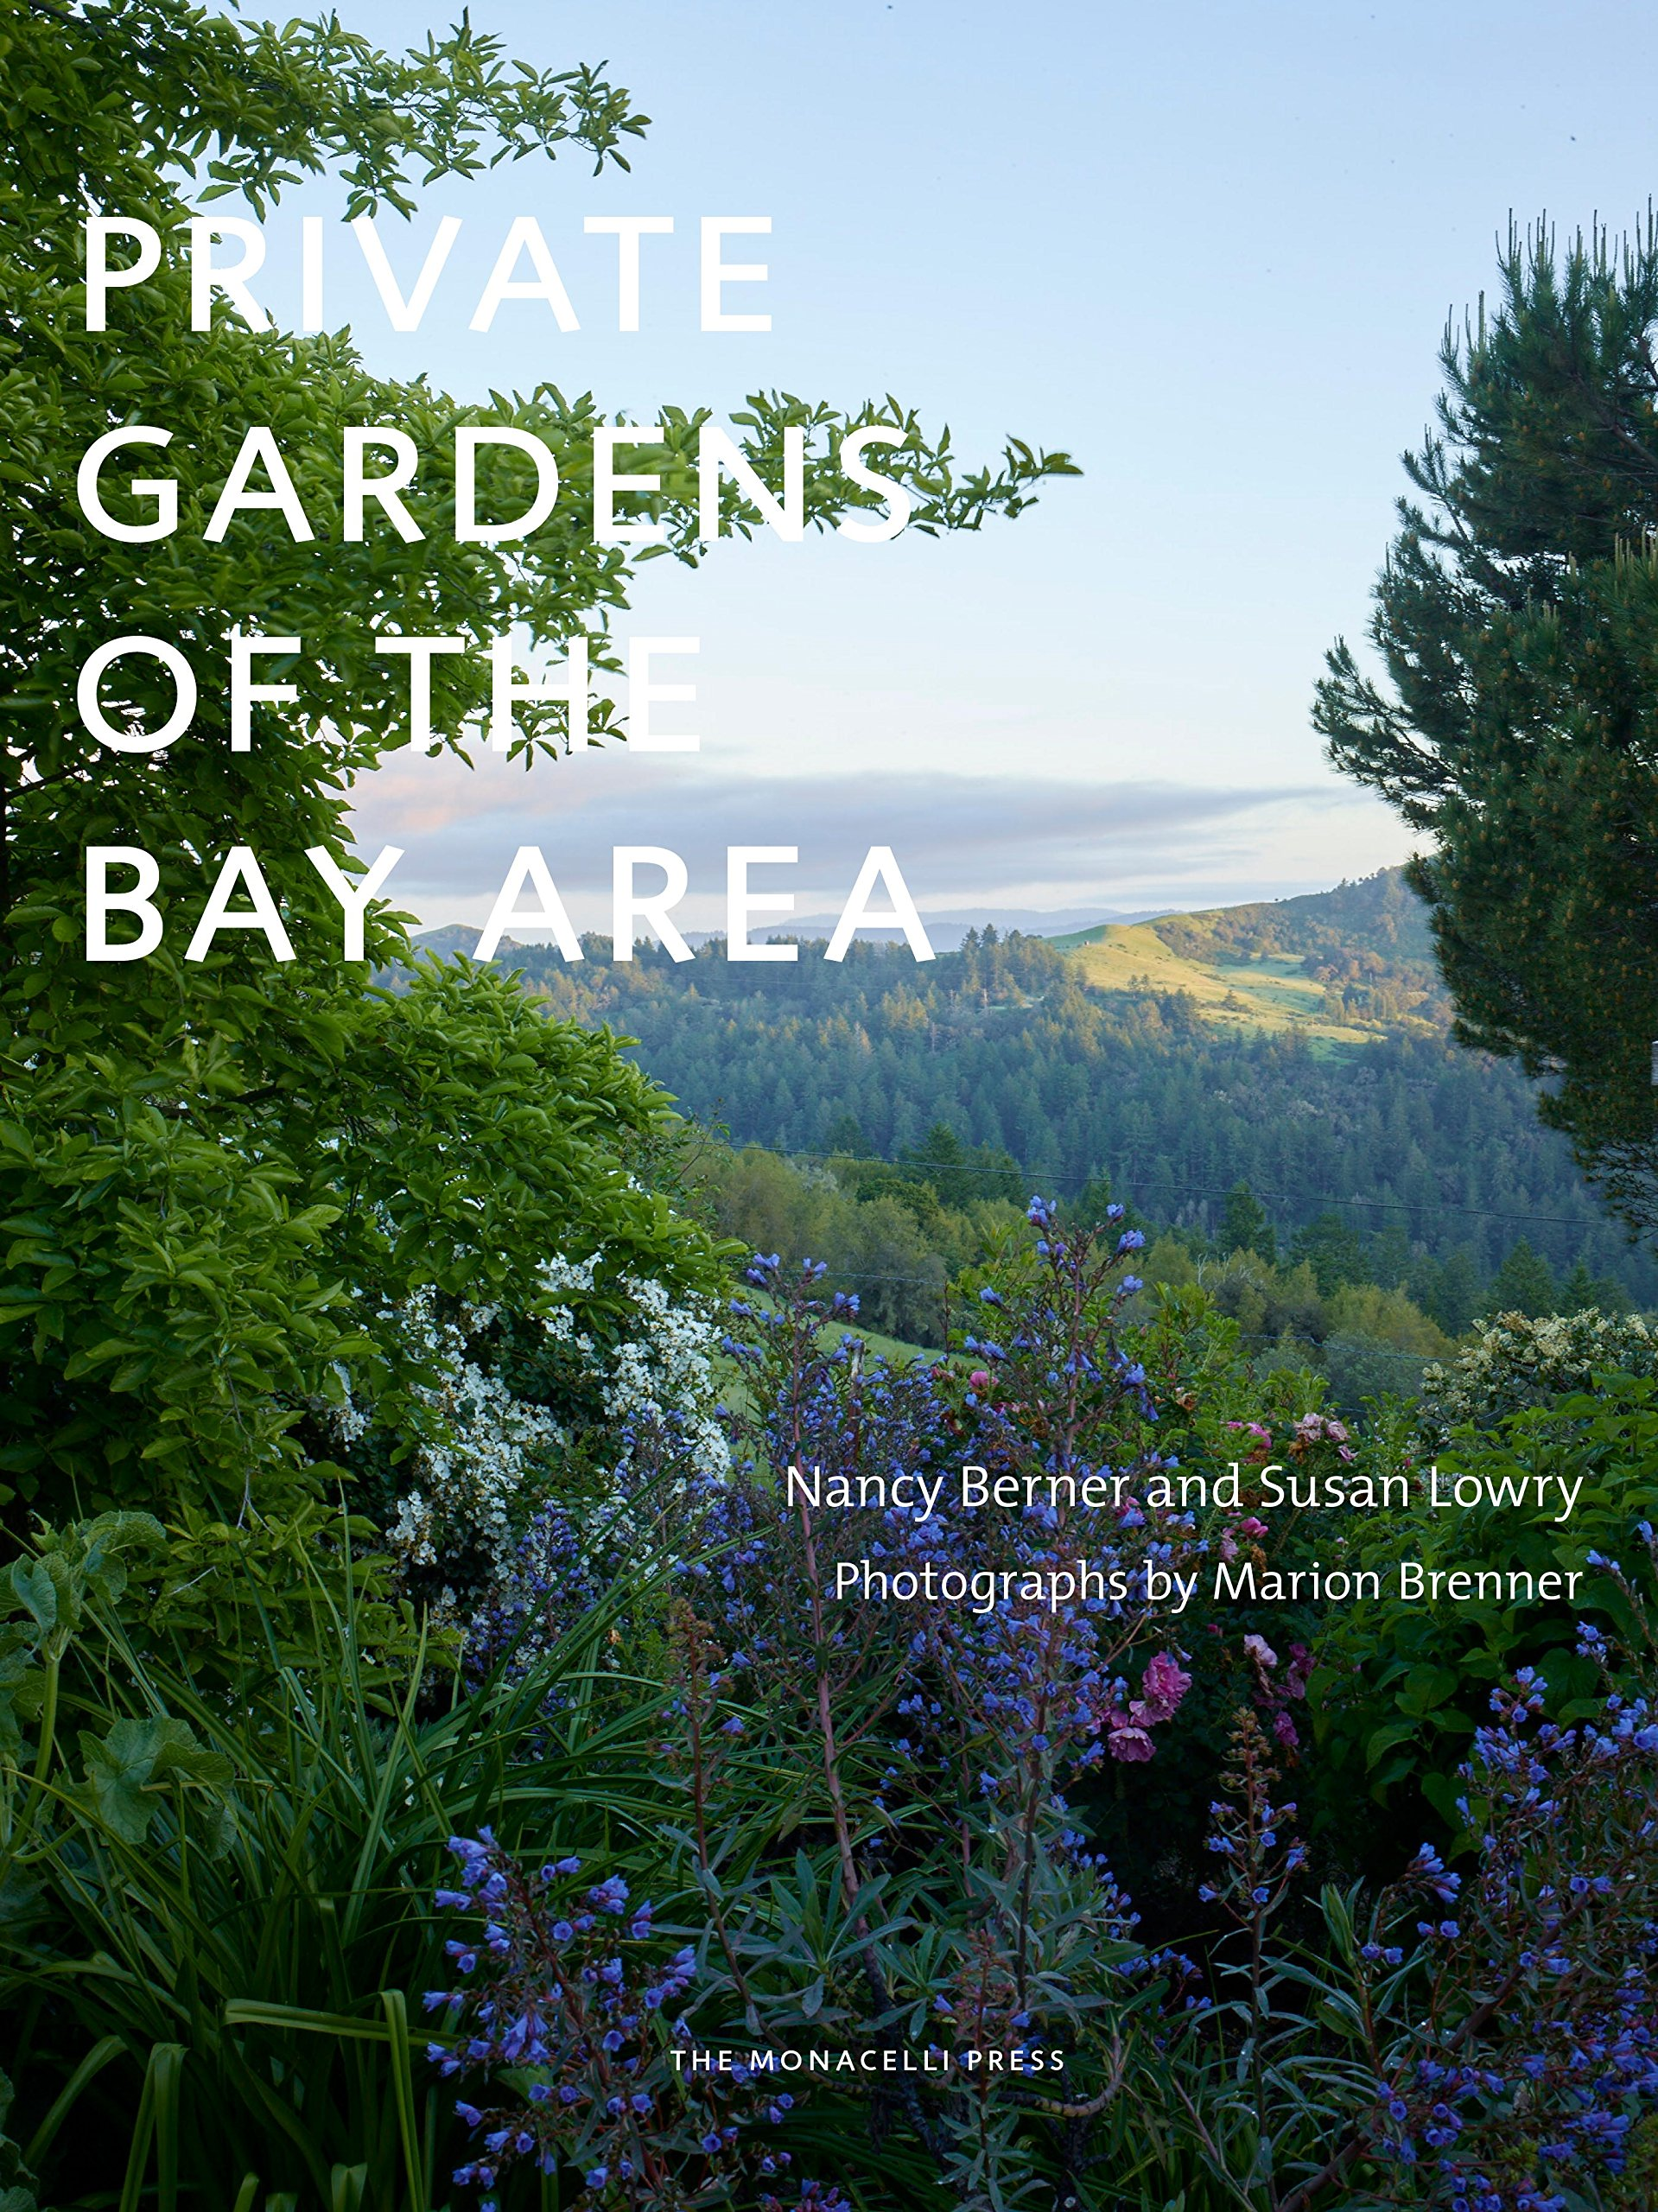 Private Gardens of the Bay Area Susan Lowry Nancy Berner Marion